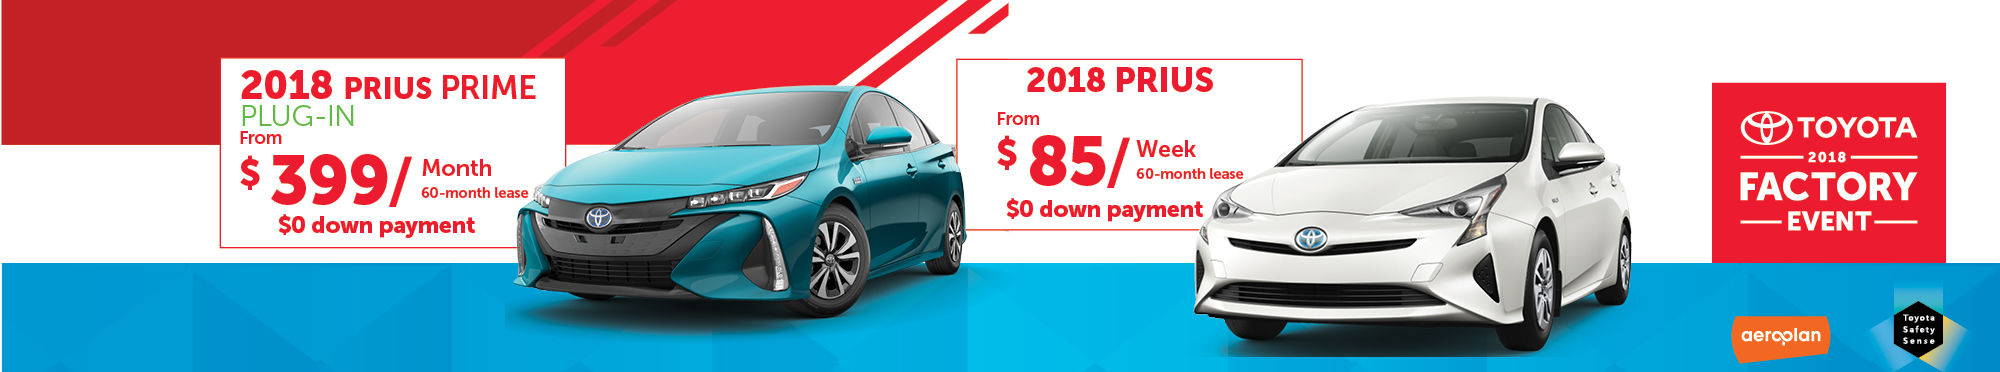 promotion prius and prime 2018